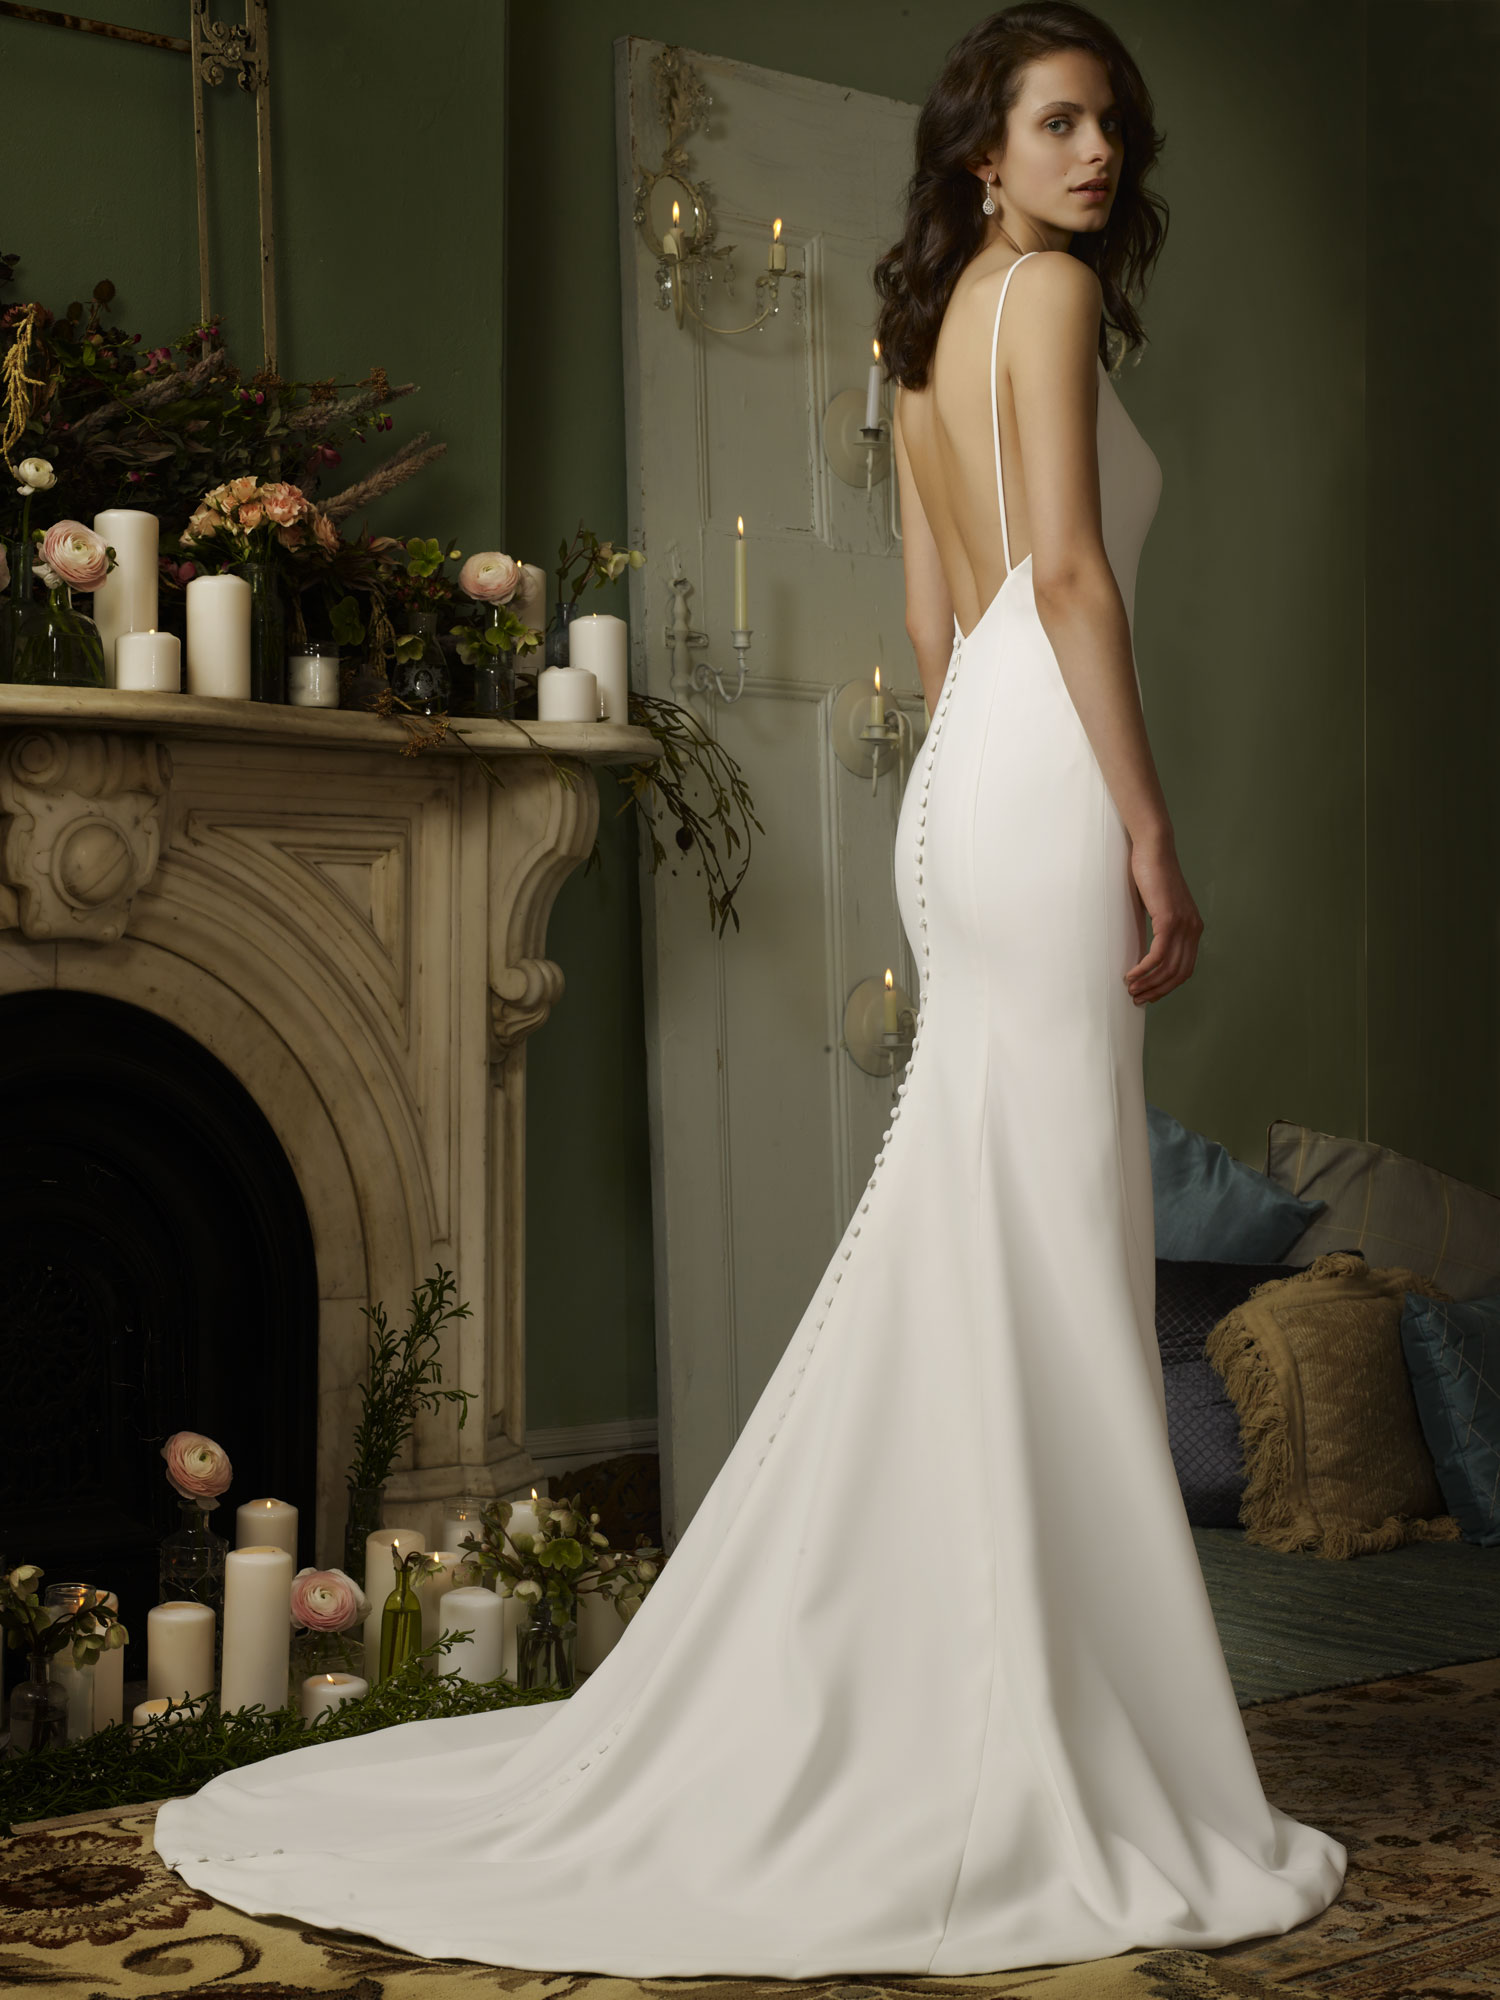 four ply crepe mermaid wedding gown